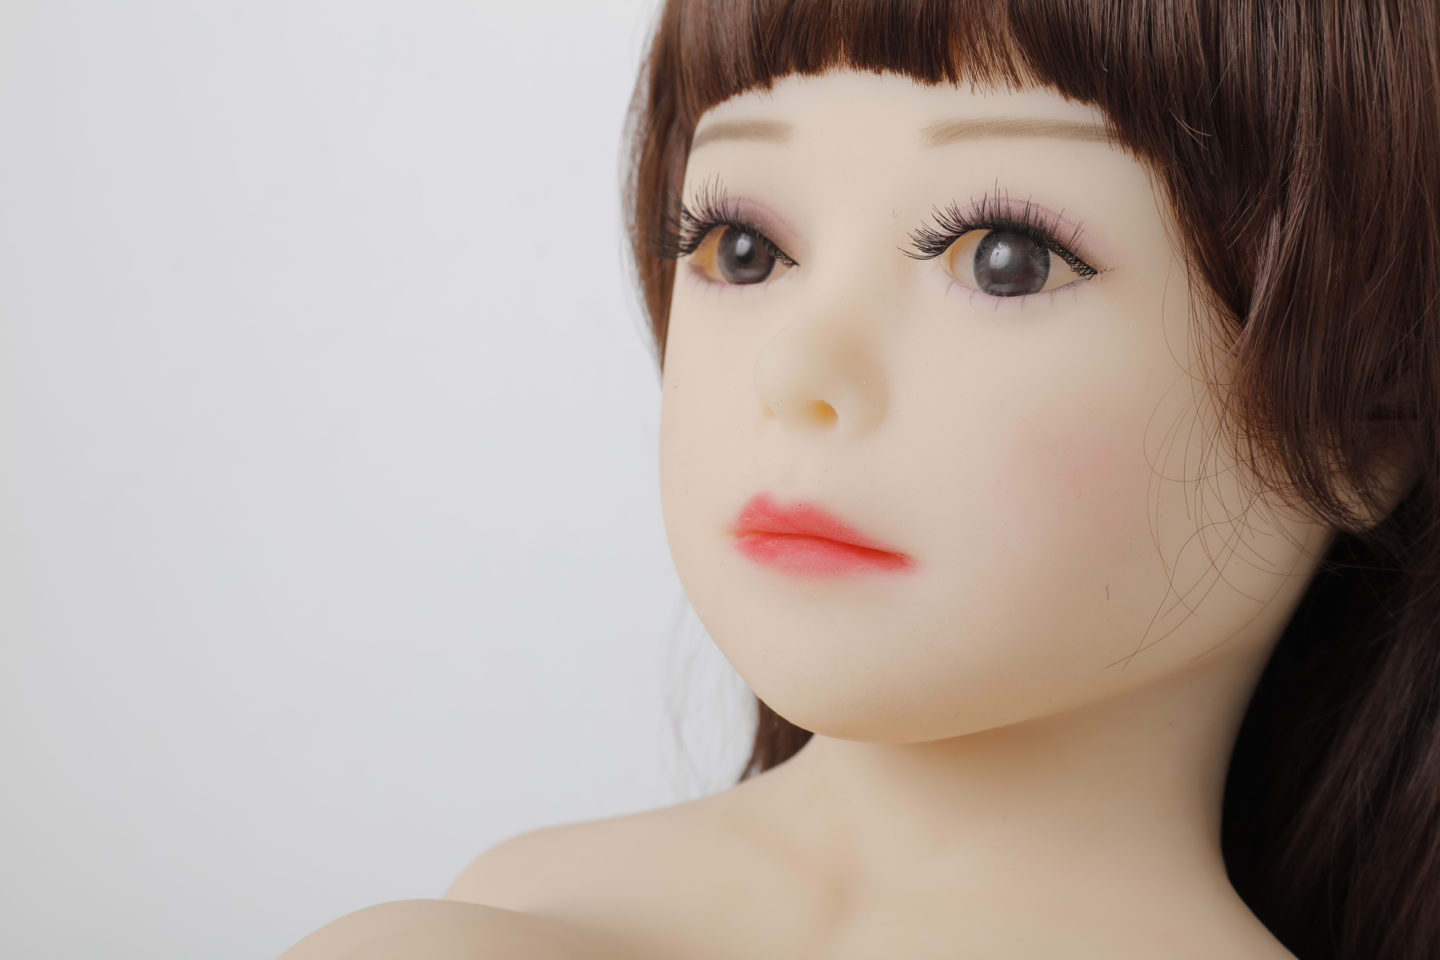 Sex doll isn't all about sex